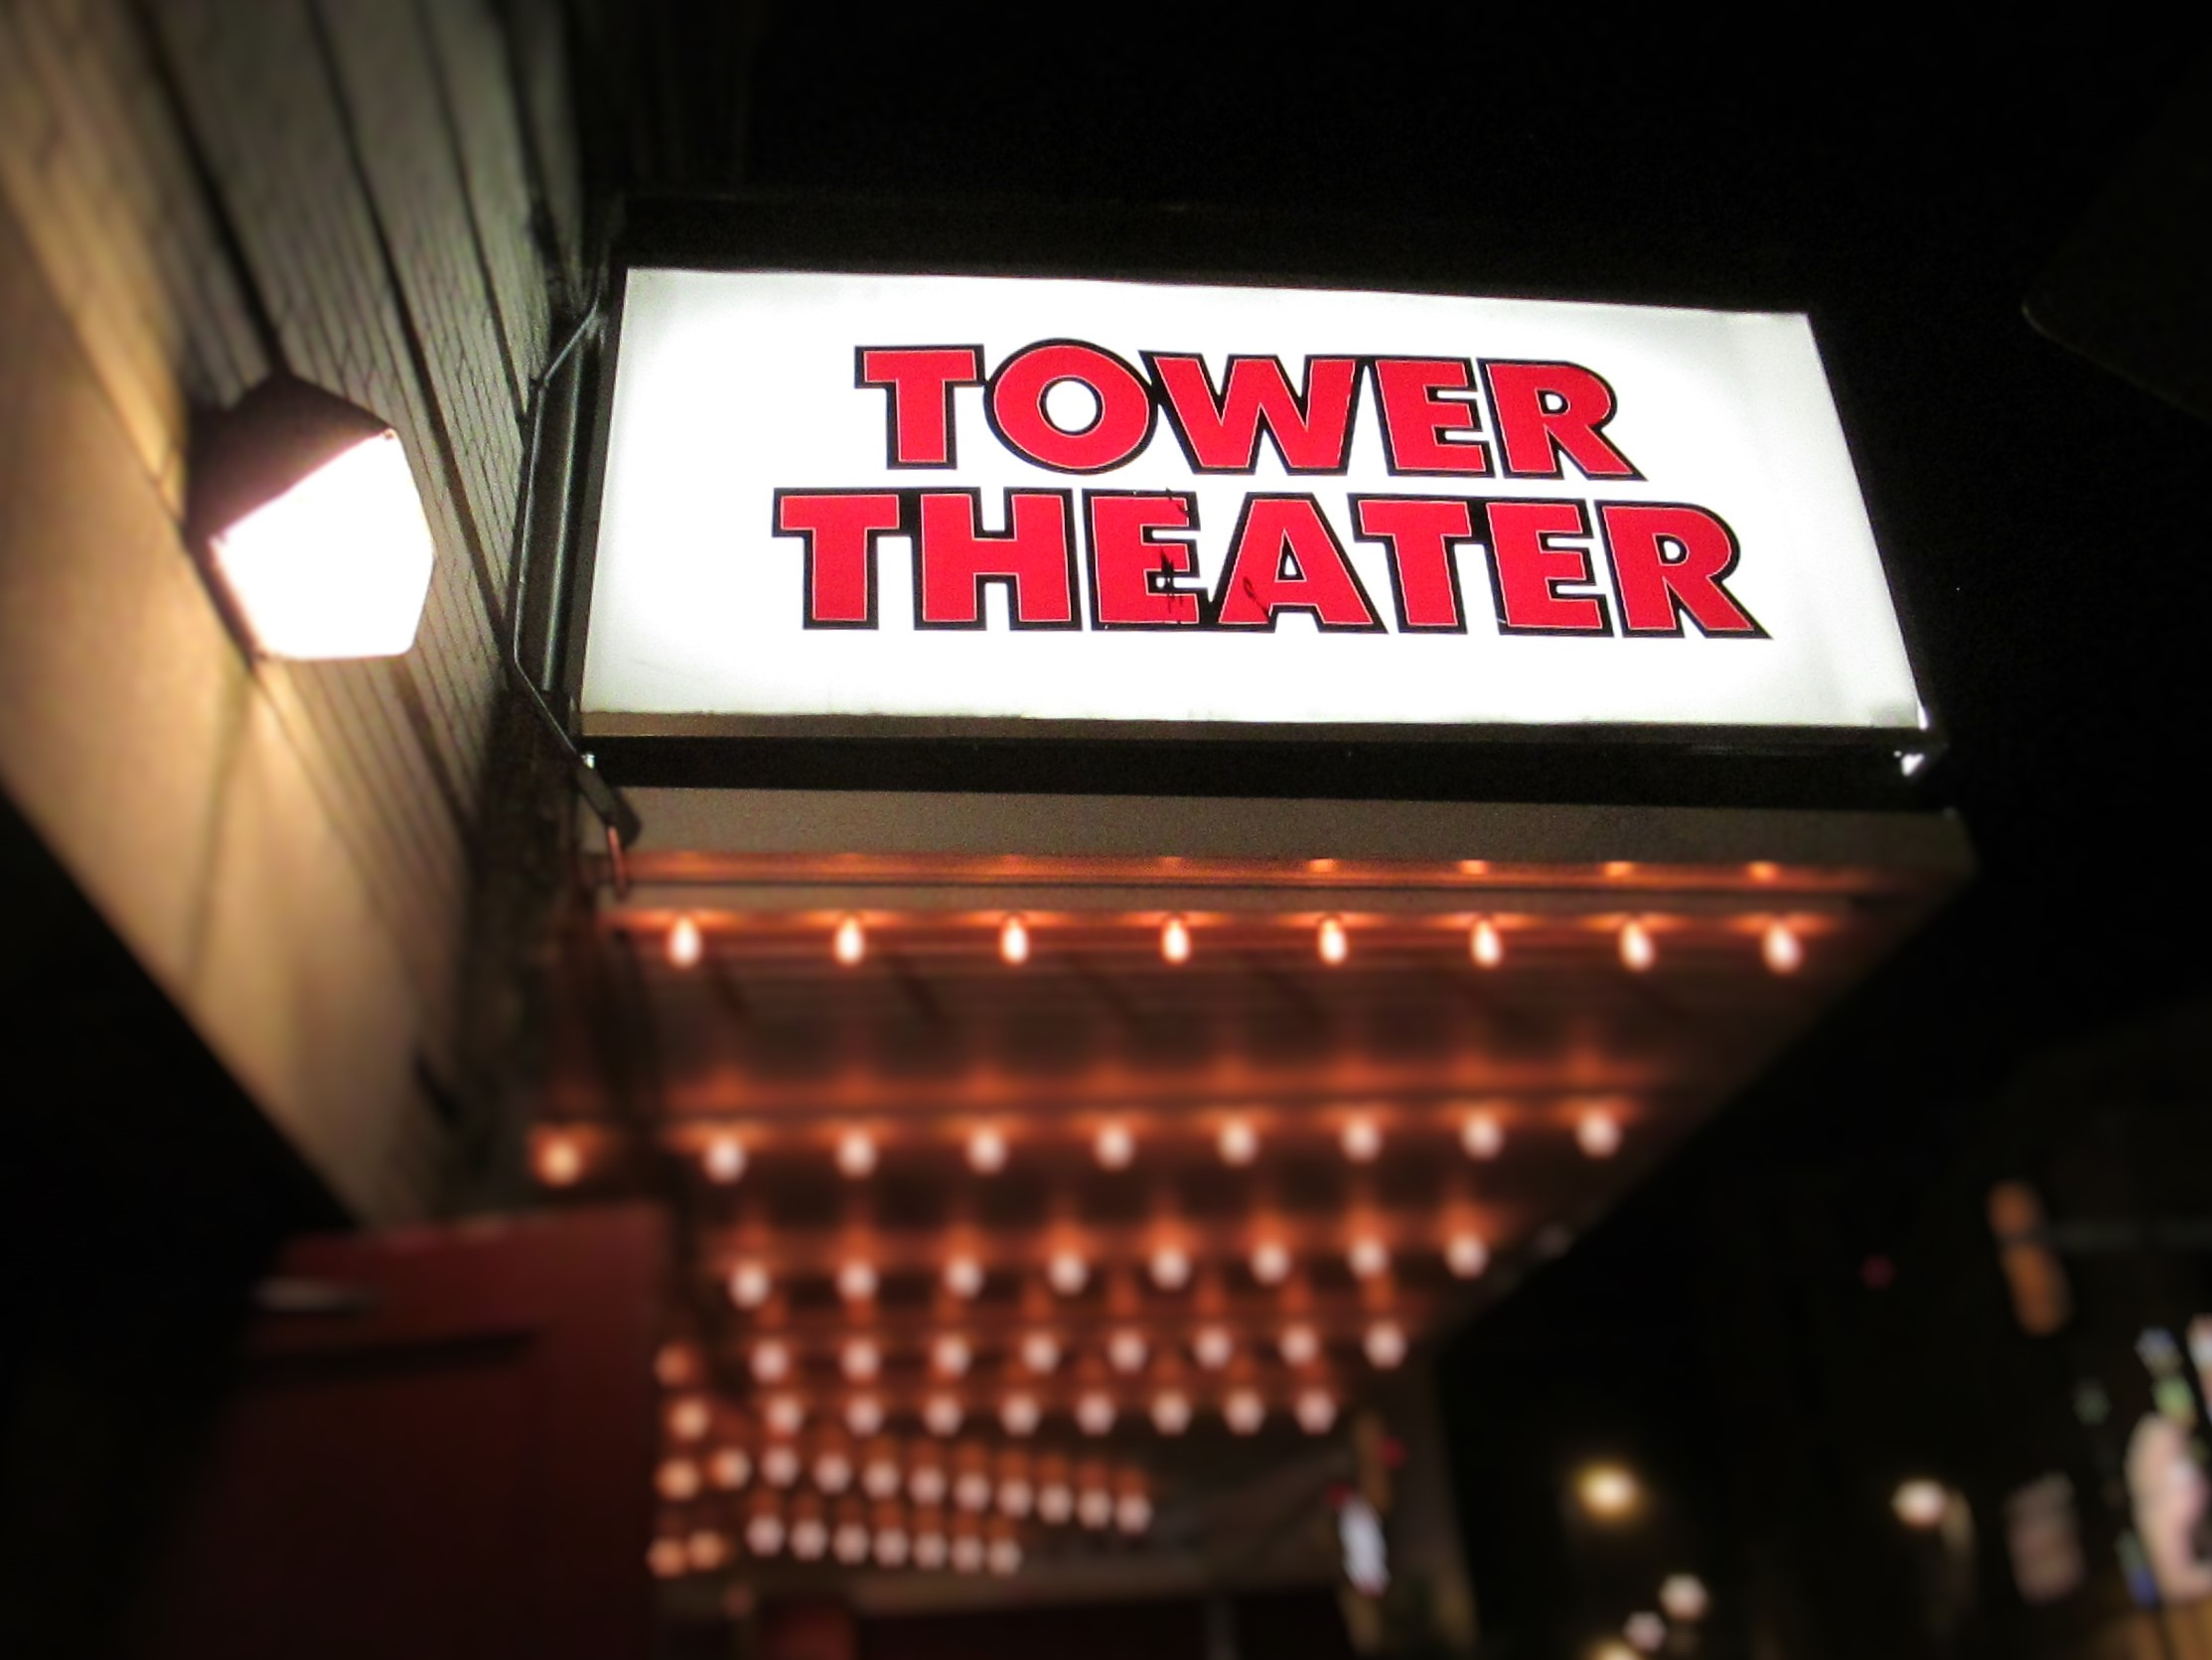 Tower Theater Upper Darby, Pennsylvania